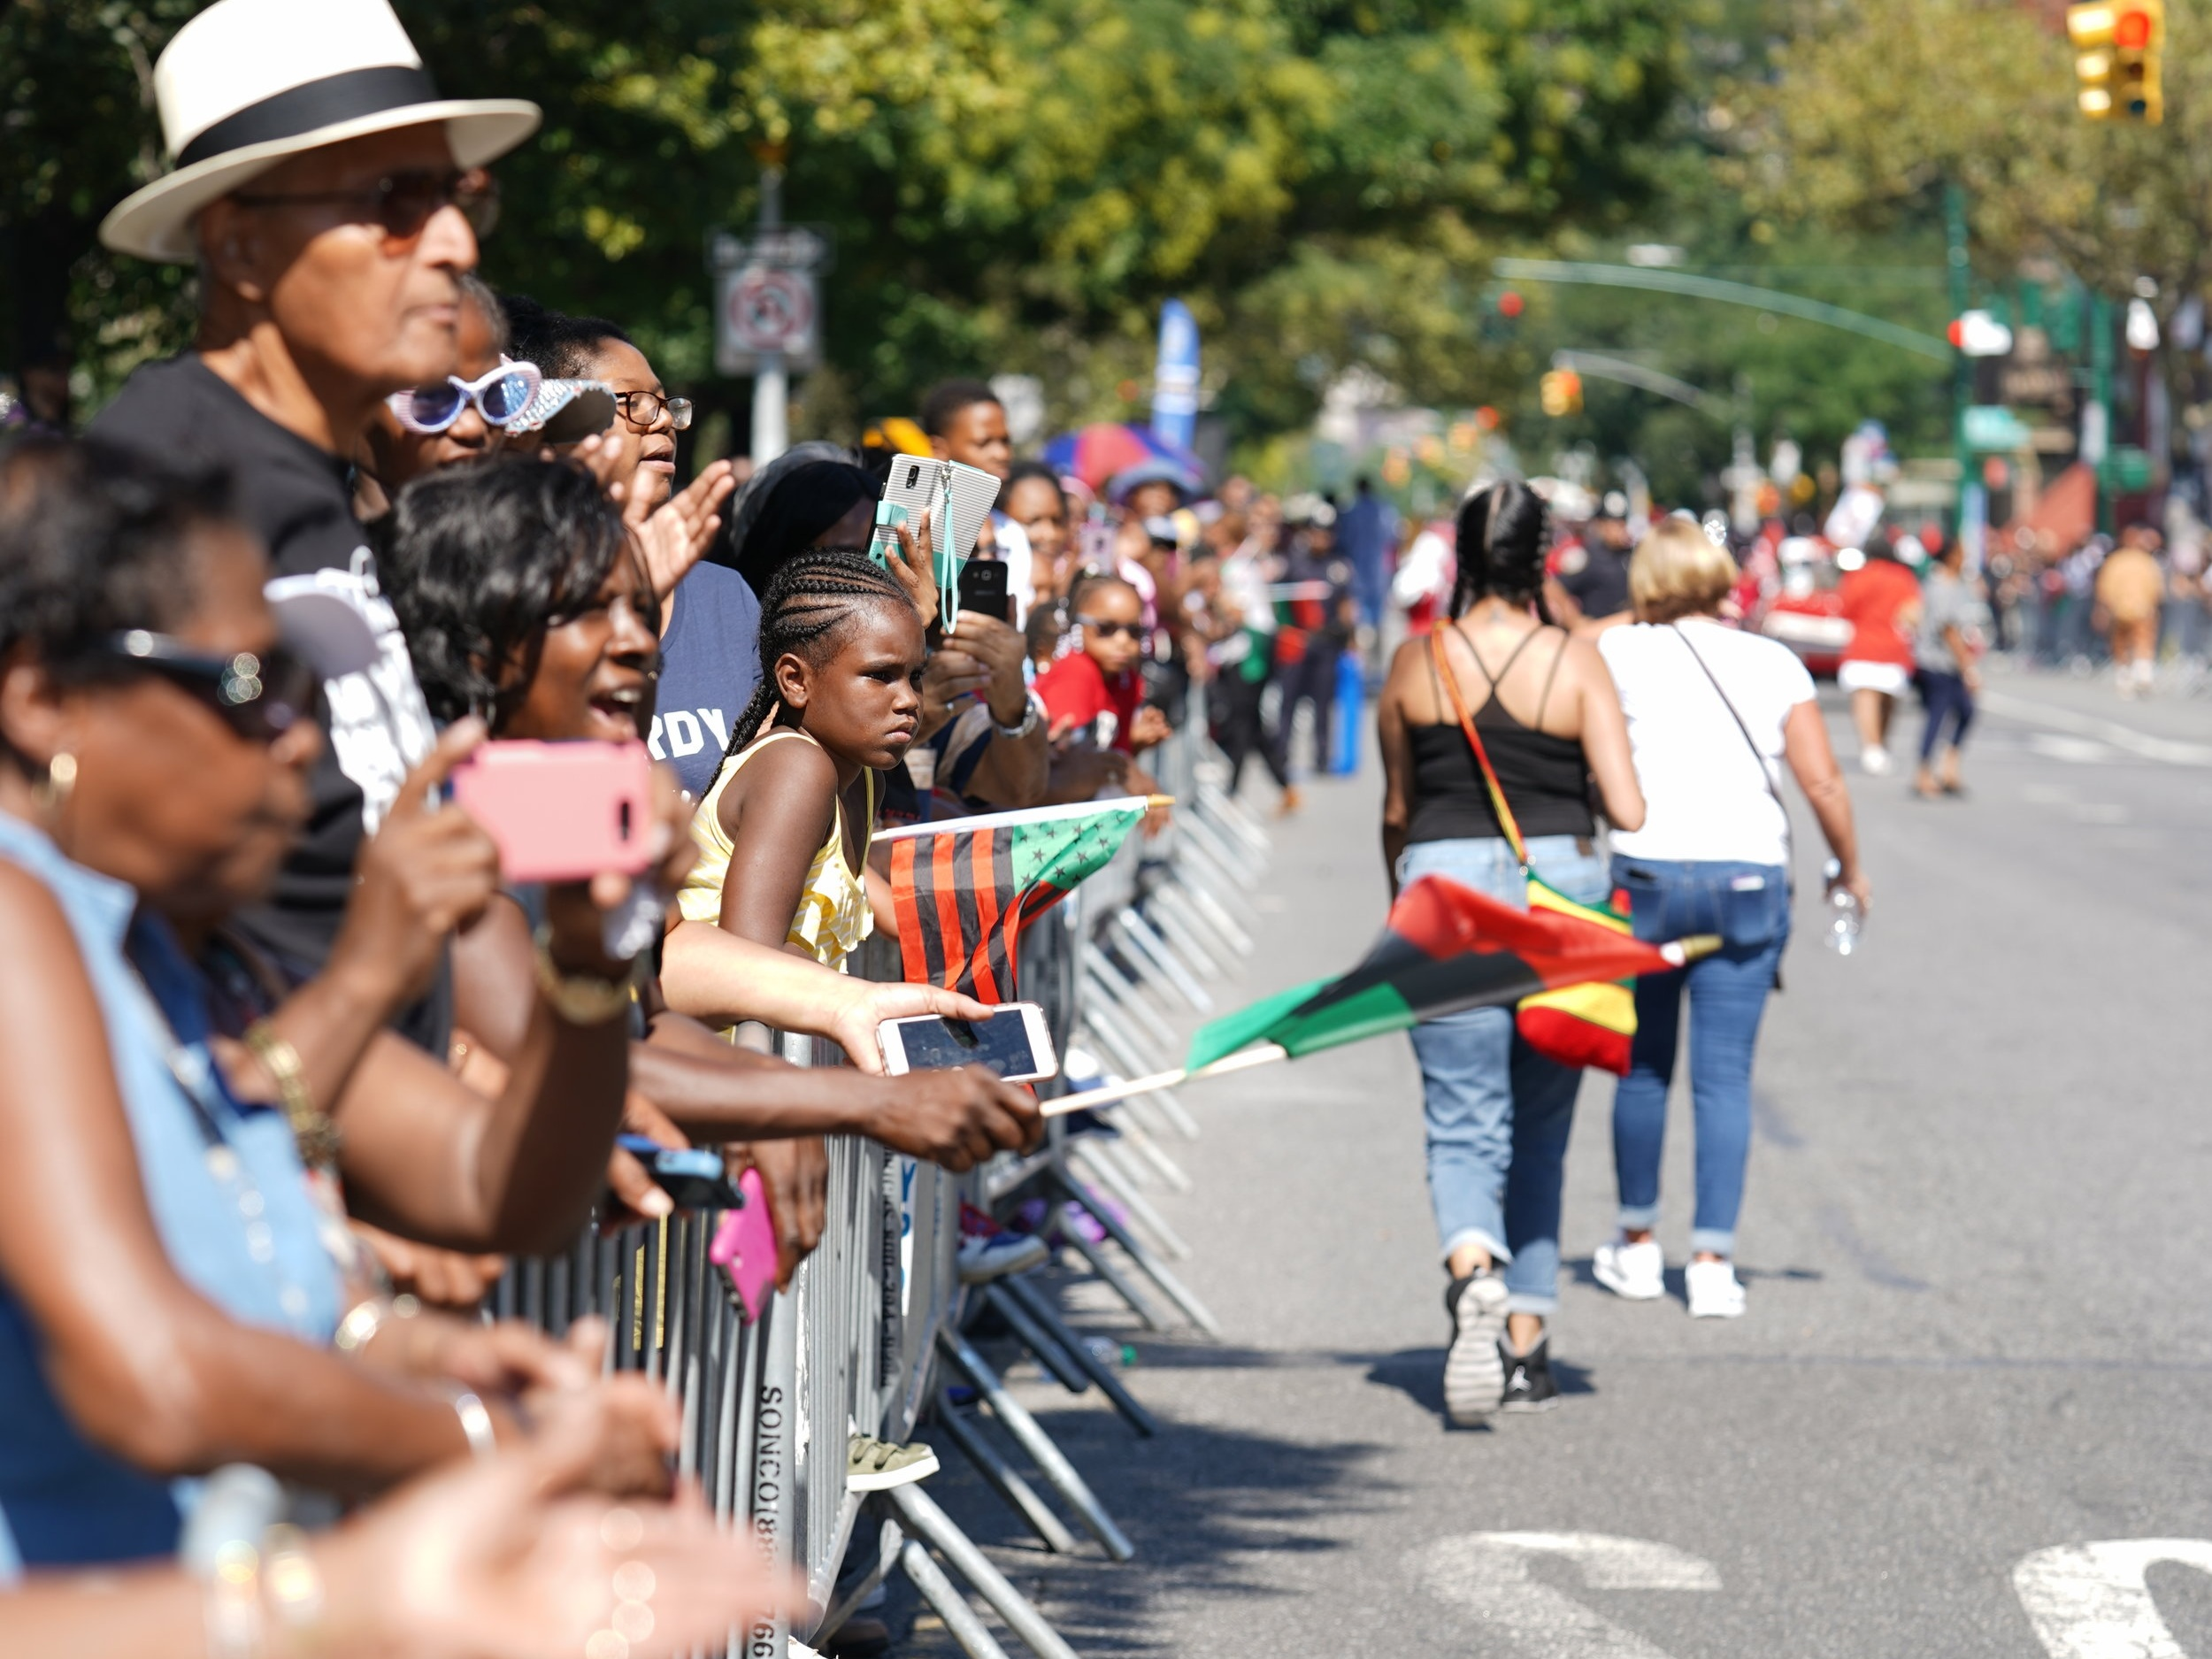 1975 - The 7th annual African American Day Parade makes American history as it grows from its 1969 marching and viewing audience of 200,000 to well over 900,000, becoming one of the largest parades of Black American culture.